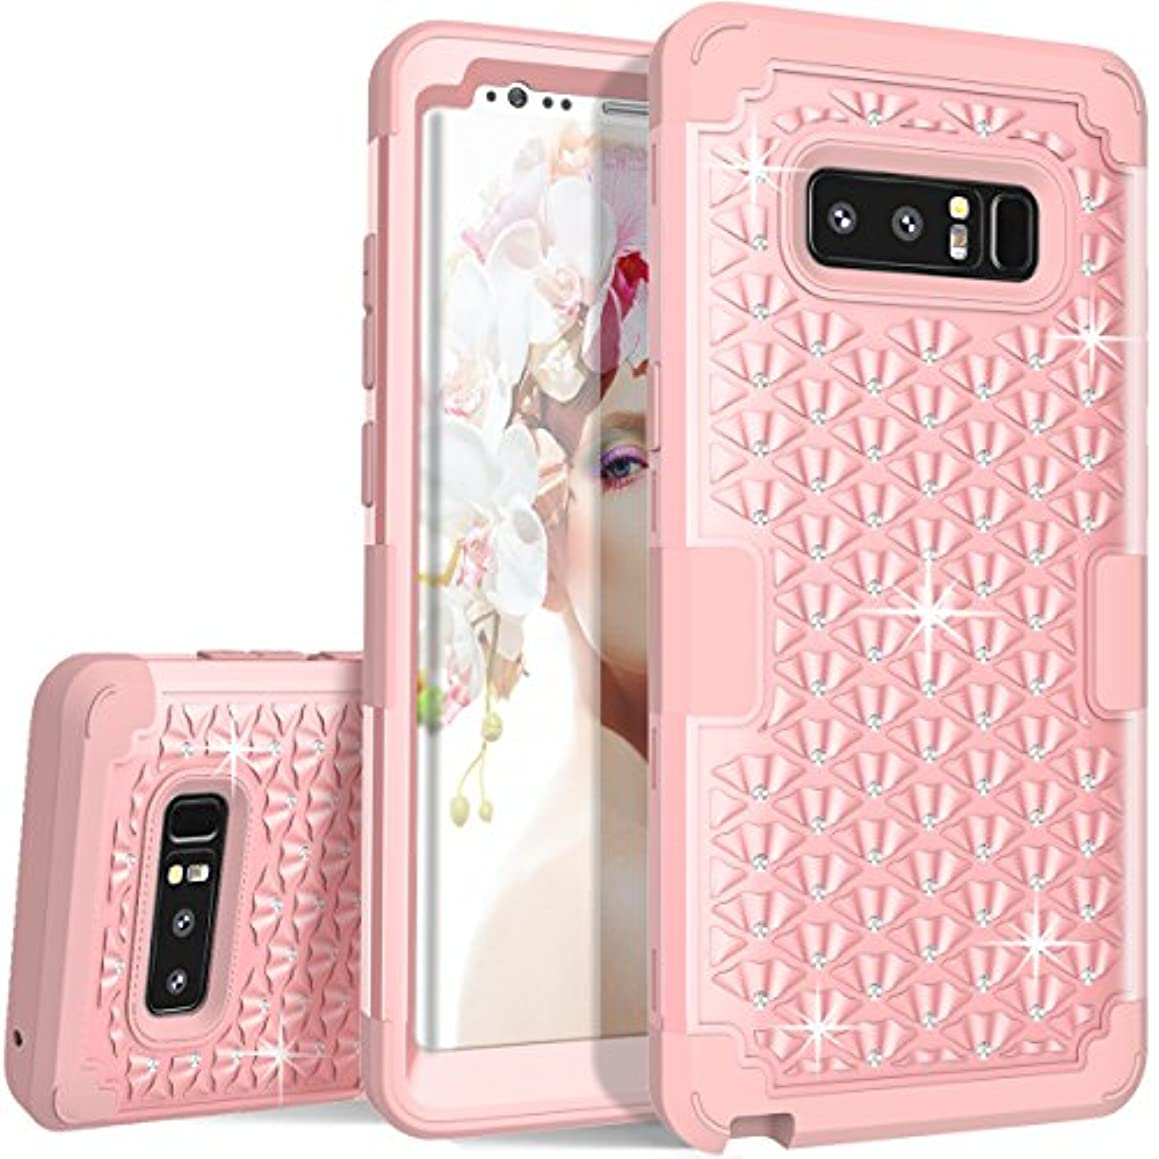 Samsung Galaxy Note 8 Case, ZAOX Hybrid Heavy Duty Shockproof Diamond Studded Bling Rhinestone Case with Dual Layer [Hard PC Plus Soft Silicone] Impact Protection (Rose Gold)